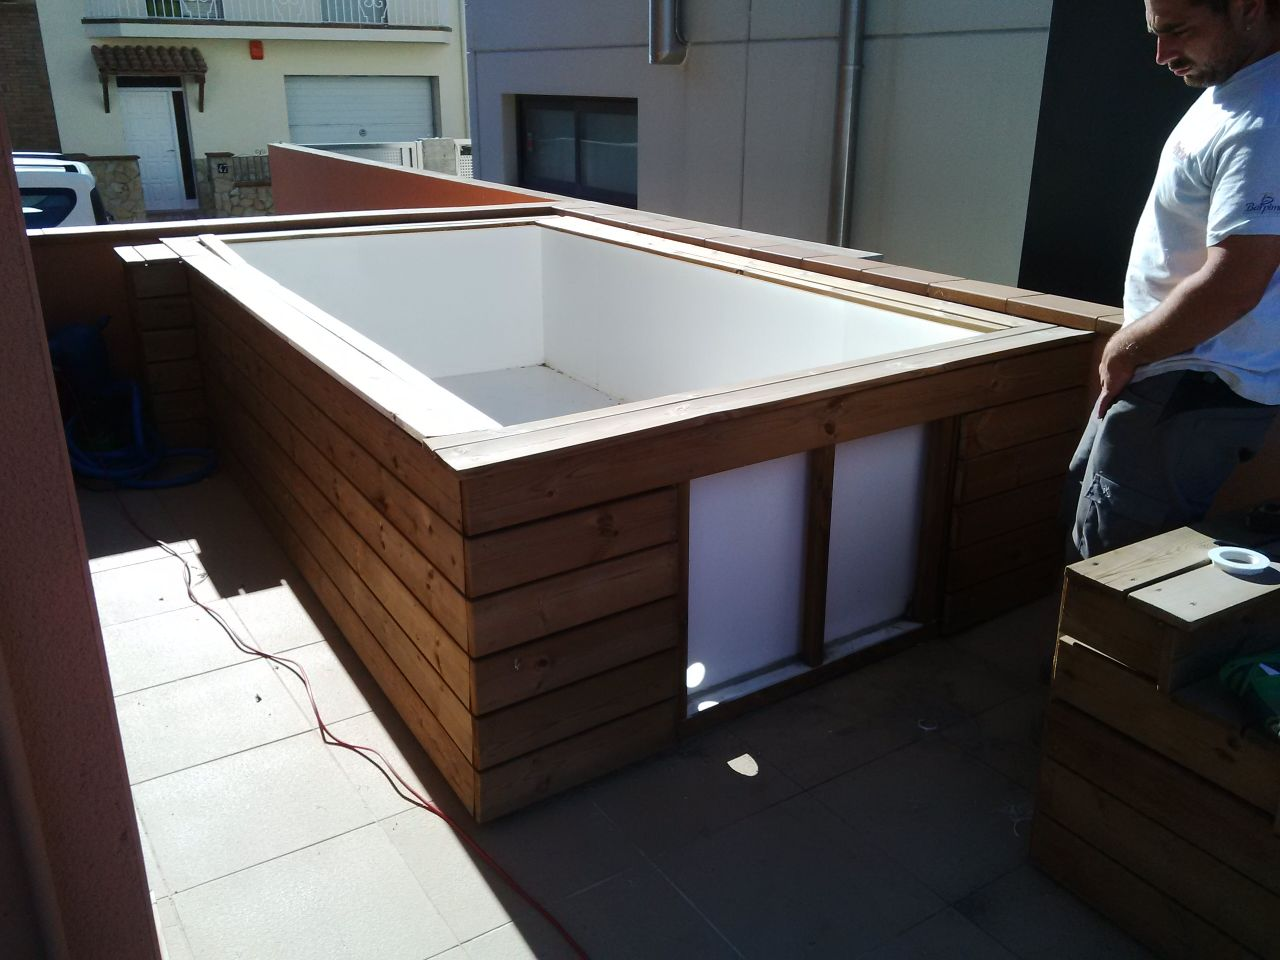 Installation piscine sur petite terrasse finition bois for Piscine coque polyester angers